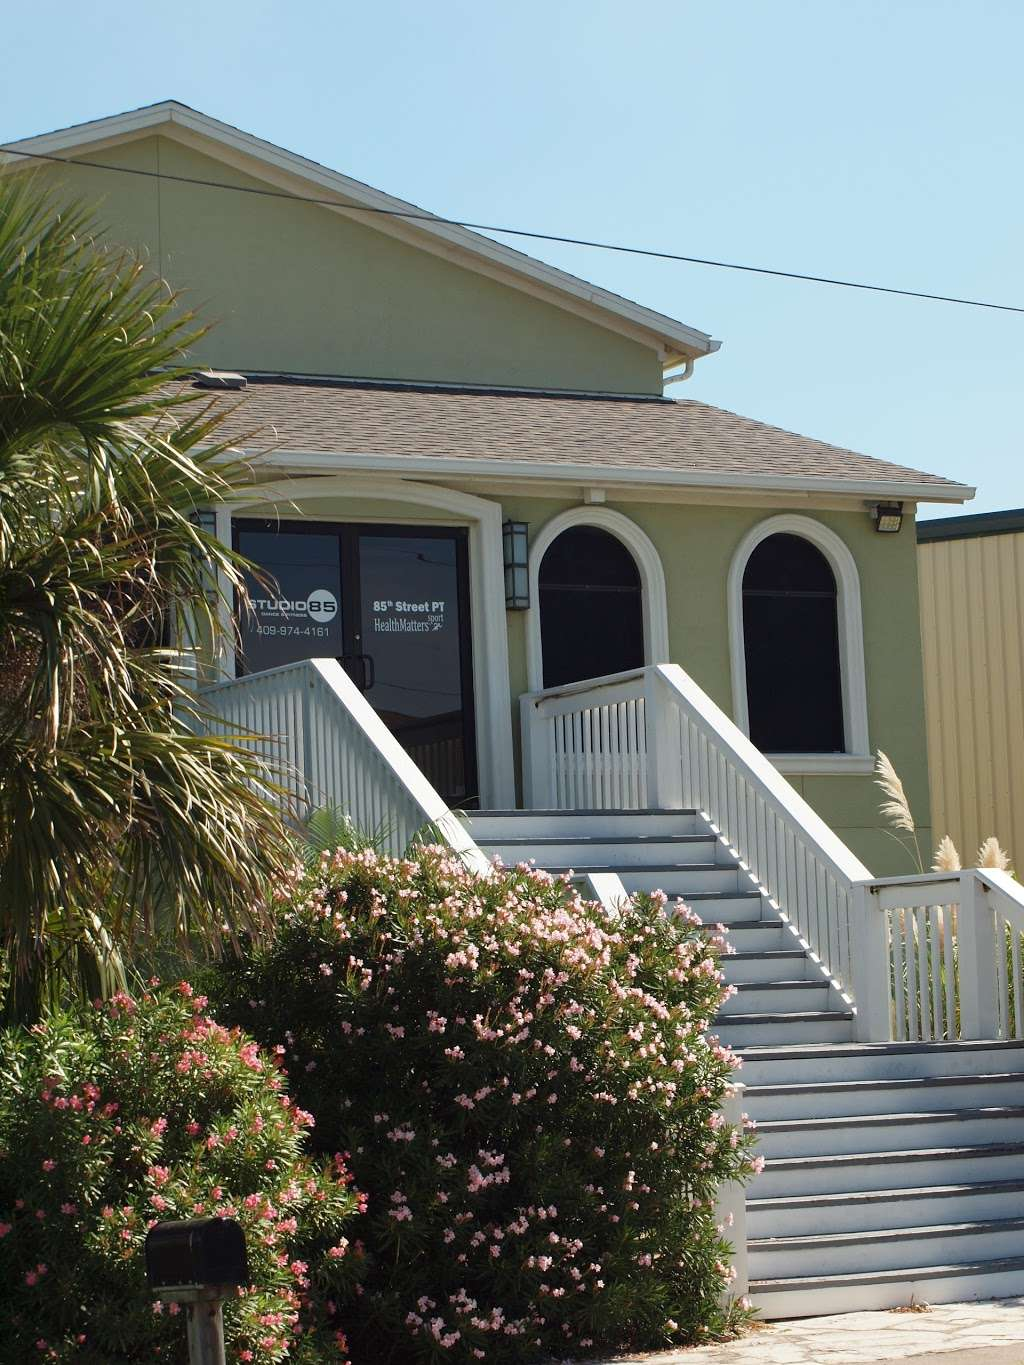 85th Street Physical Therapy - health  | Photo 2 of 10 | Address: 3622 85th St, Galveston, TX 77554, USA | Phone: (409) 974-4161